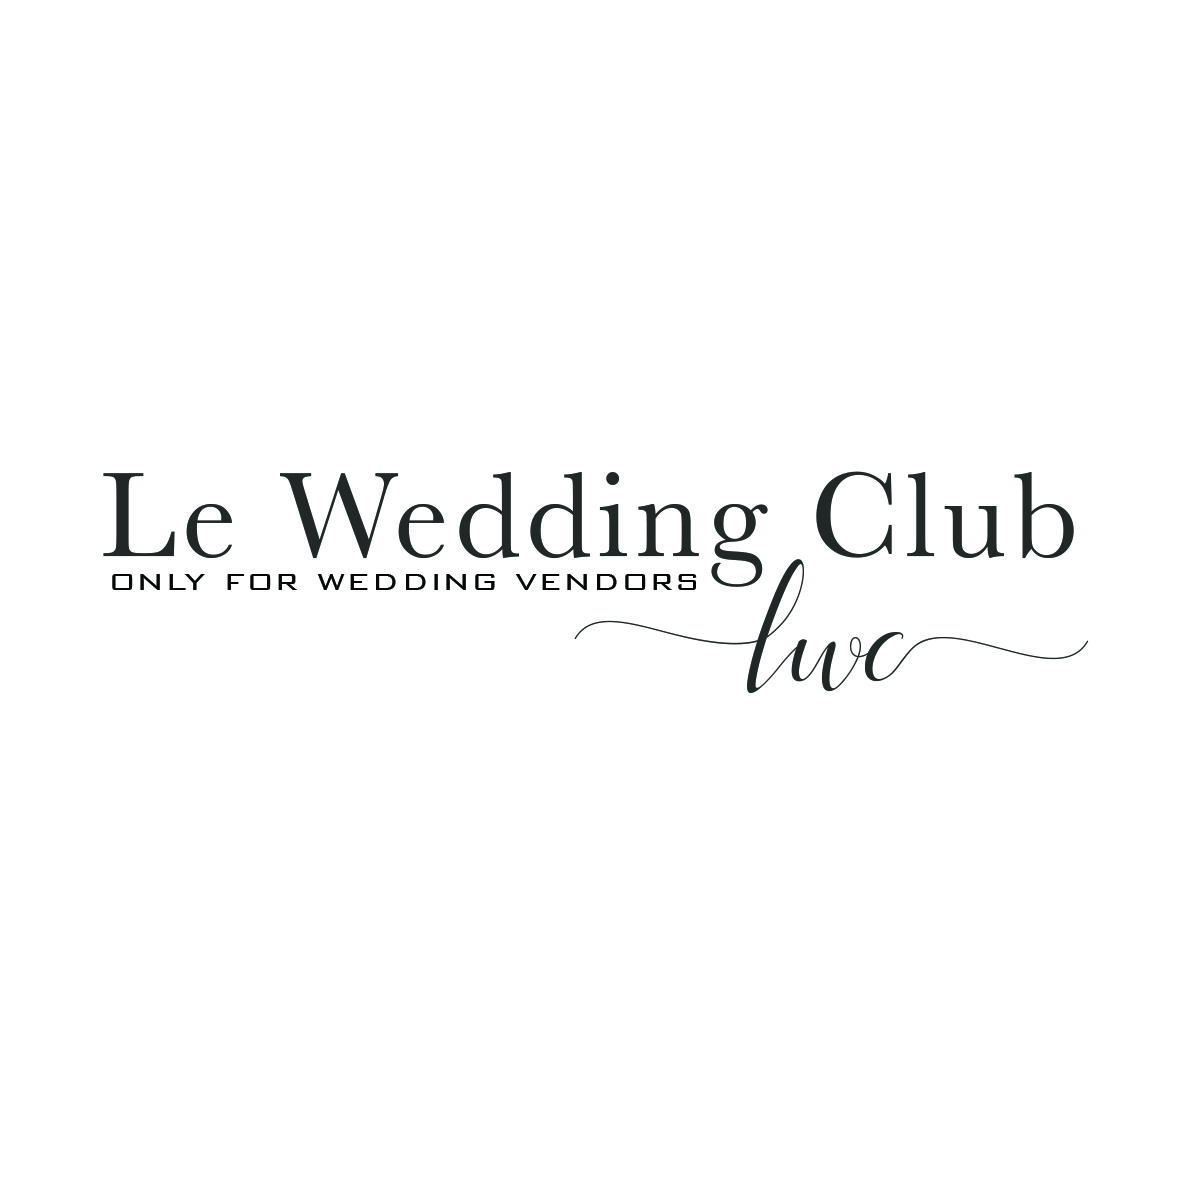 Le Wedding Club